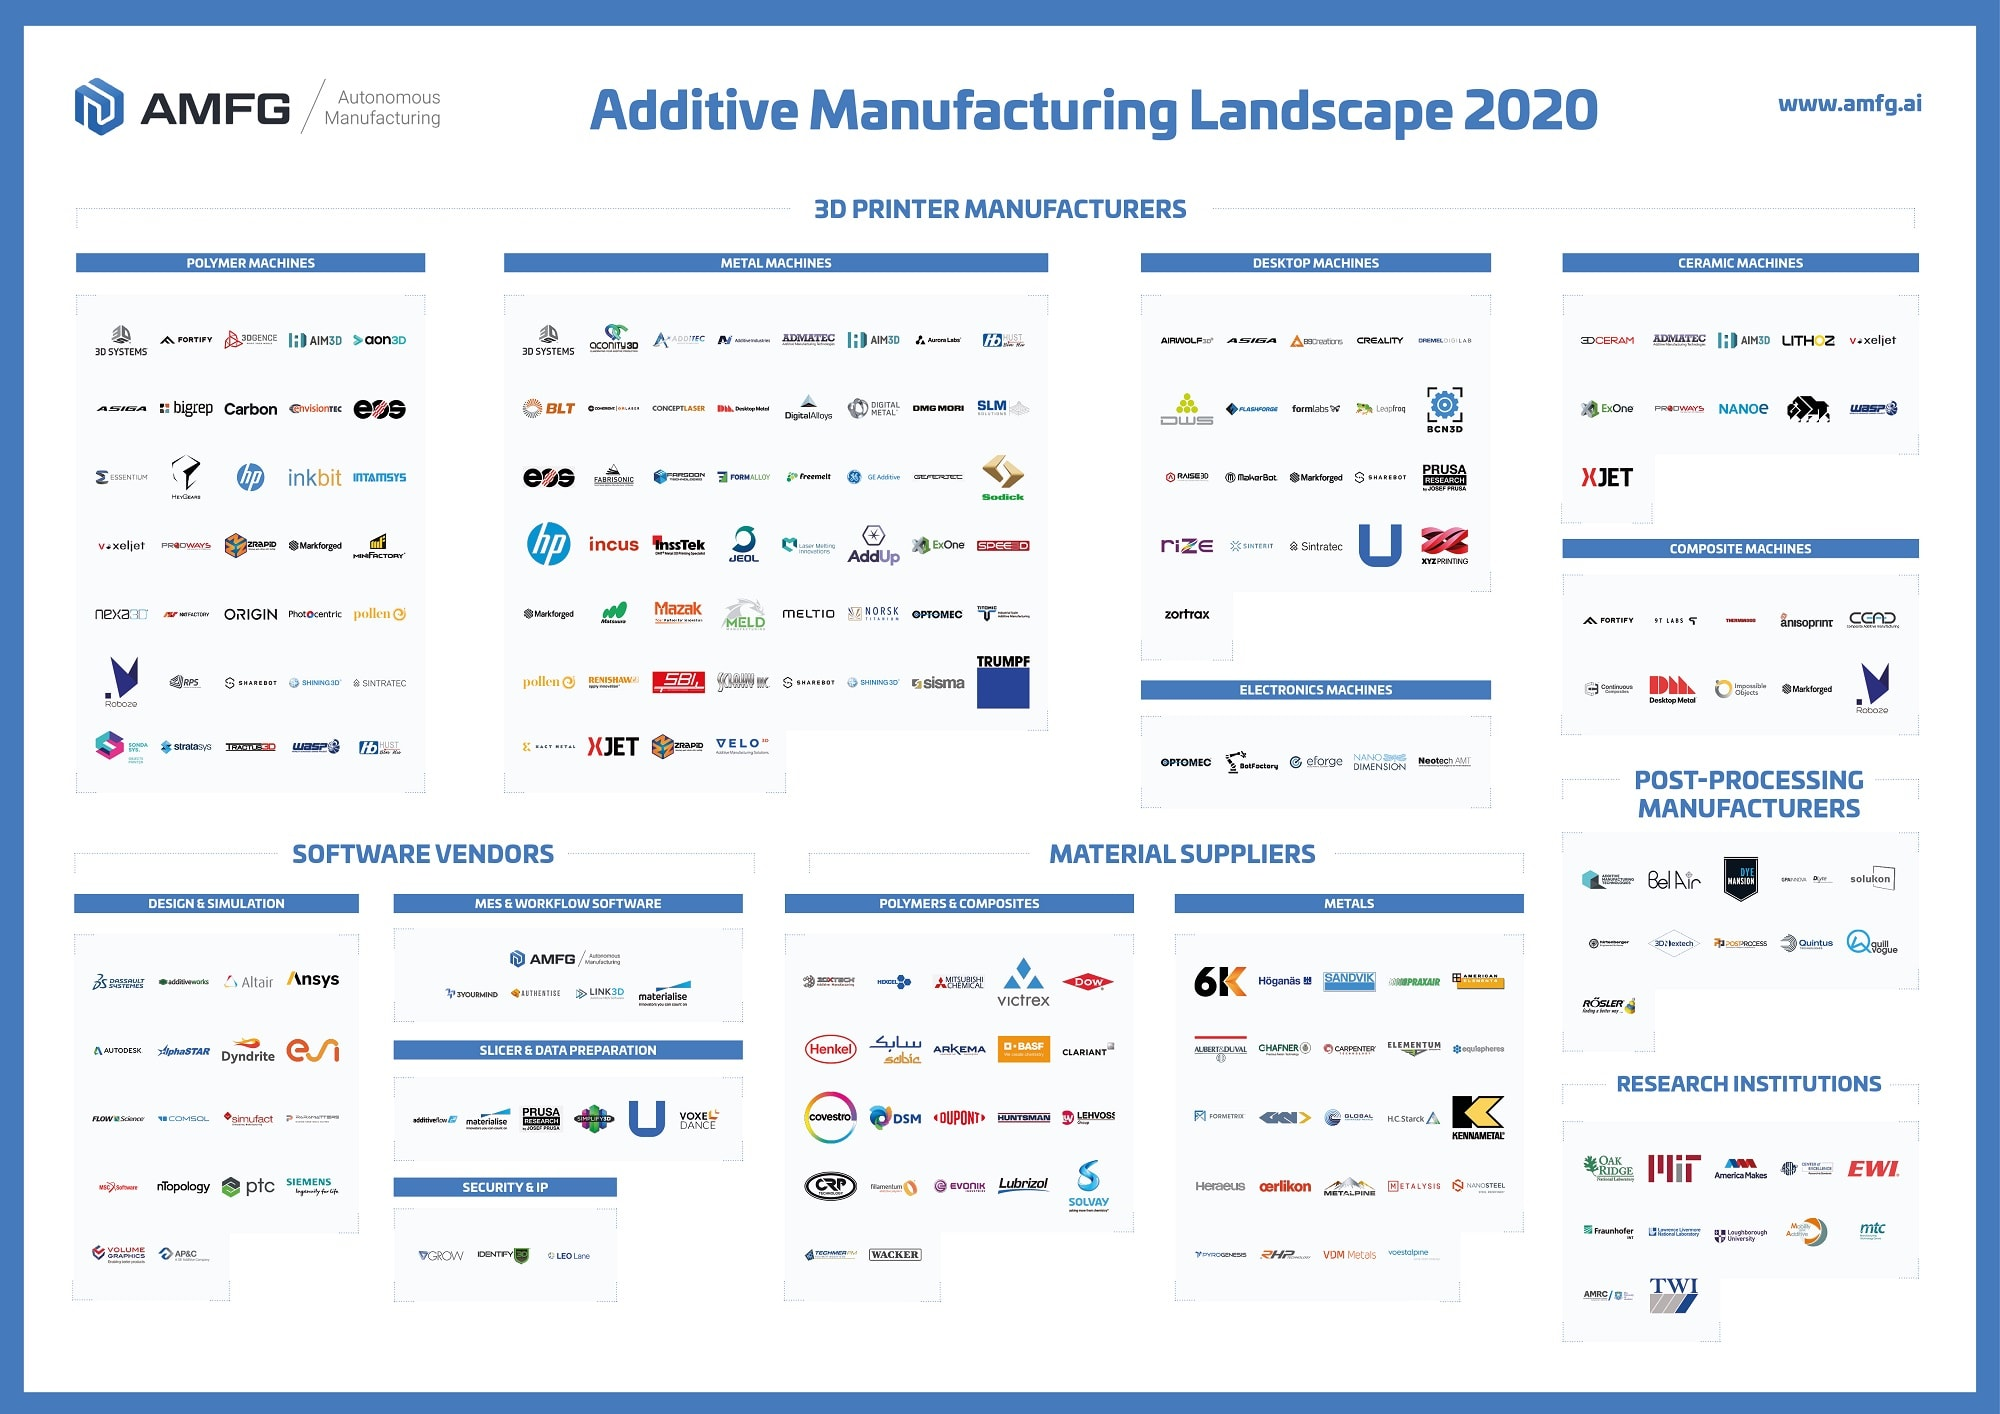 Above: The Additive Manufacturing Landscape Report covers more than 231 3D printing organisations/Image Credit: AMFG